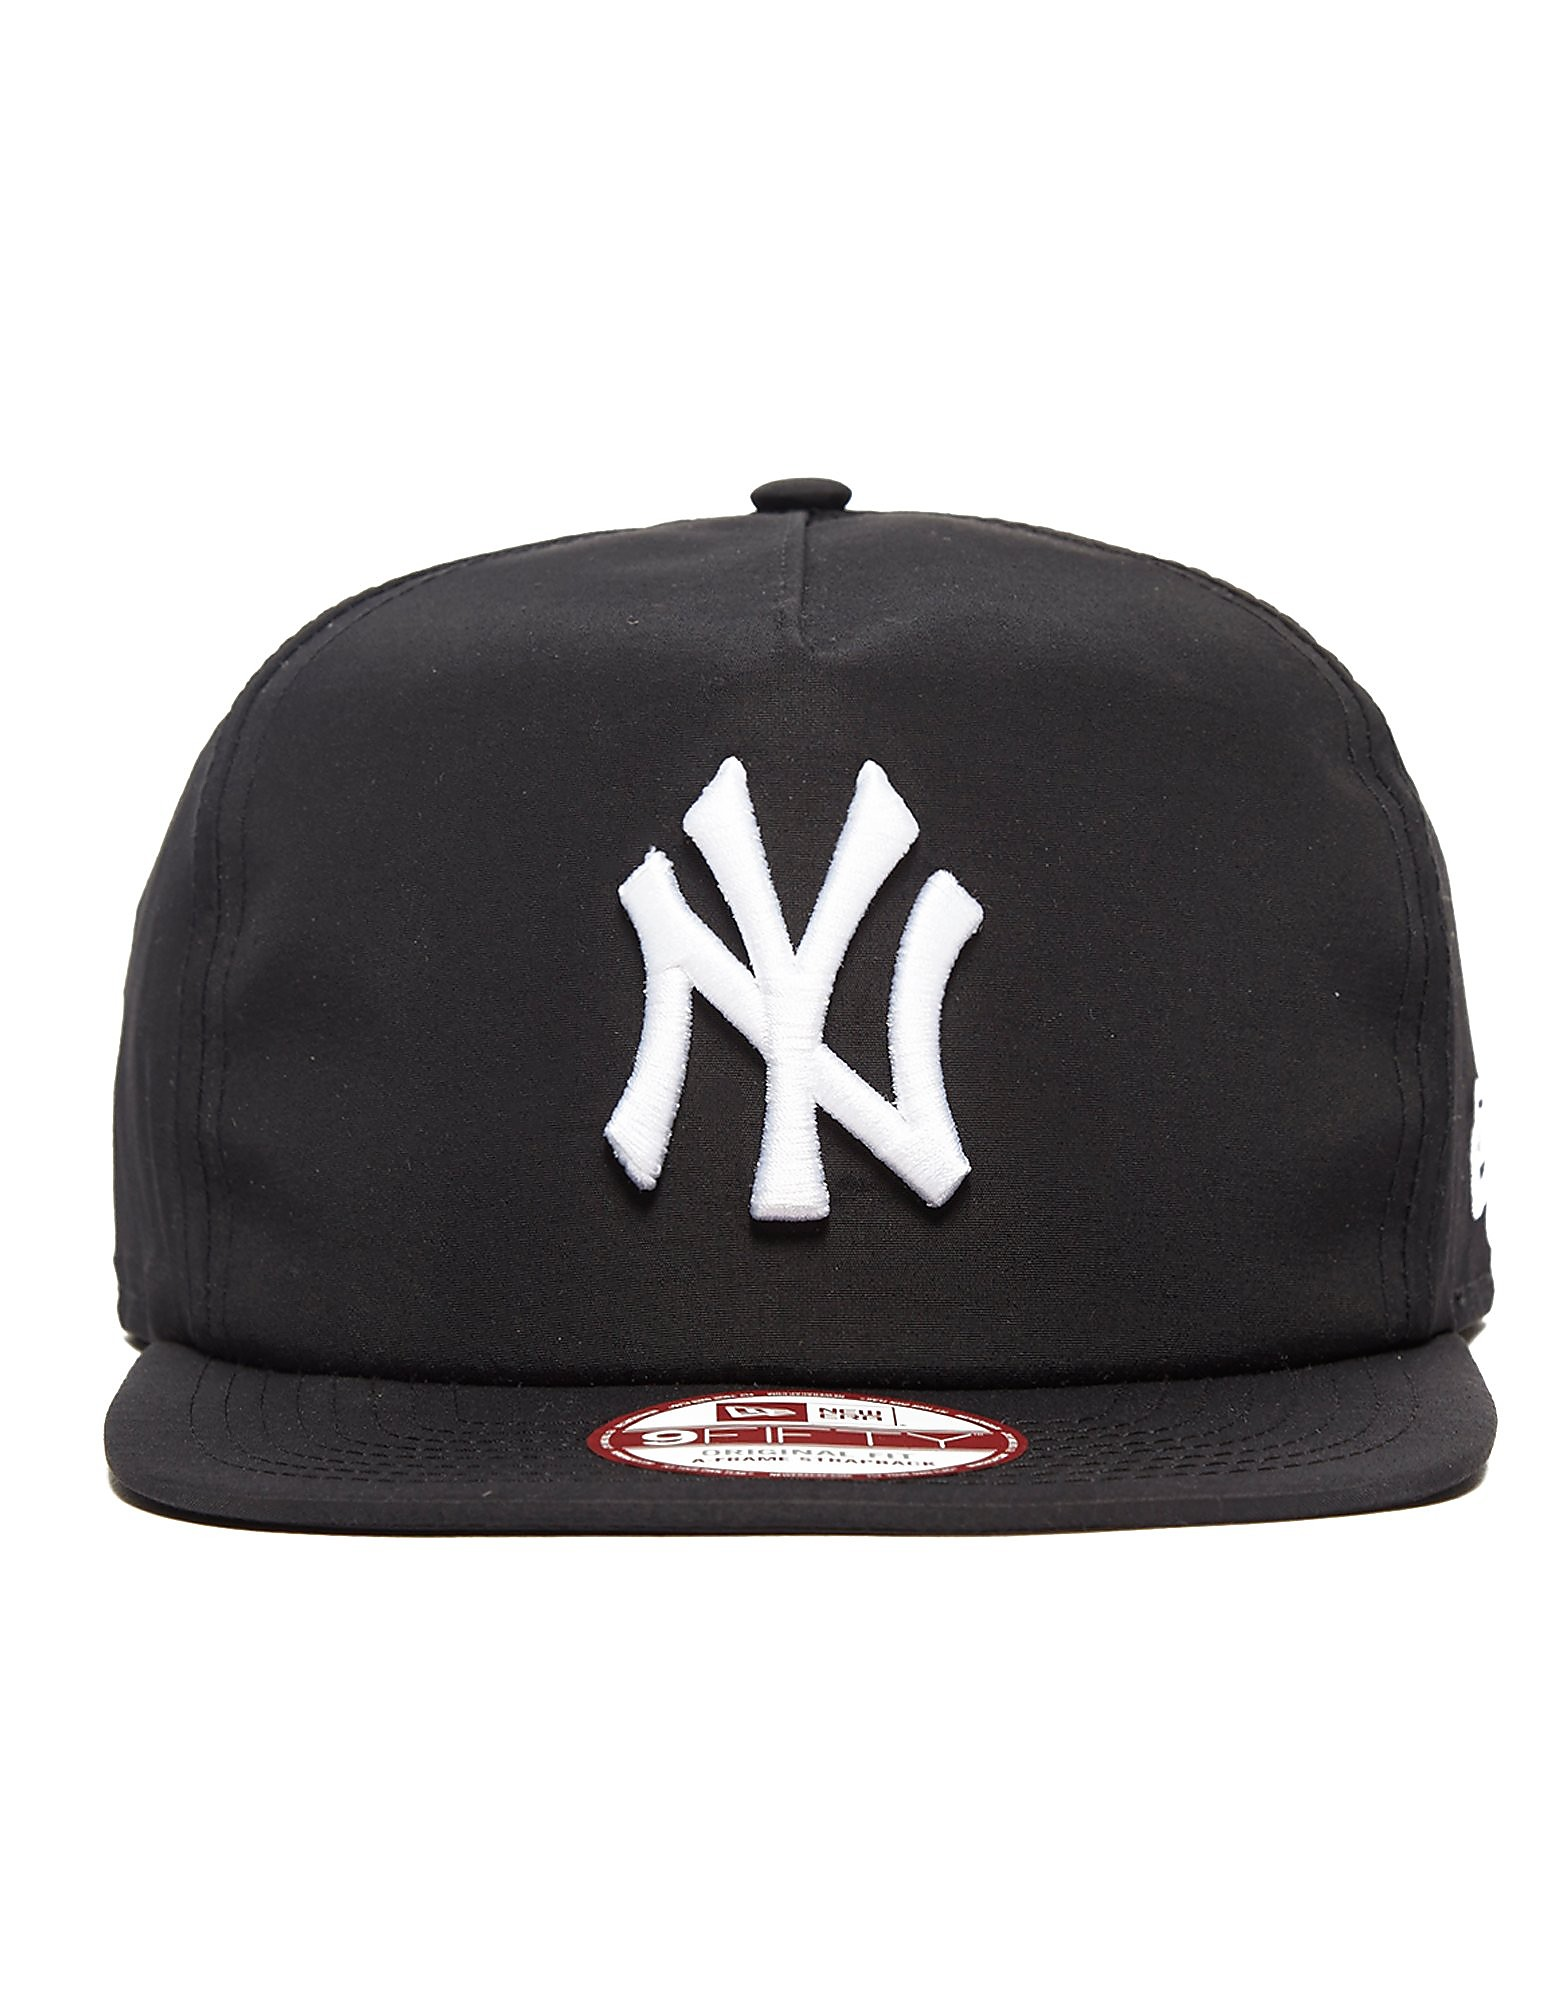 New Era MLB New York Yankees 9FIFTY Remix Snapback Cap